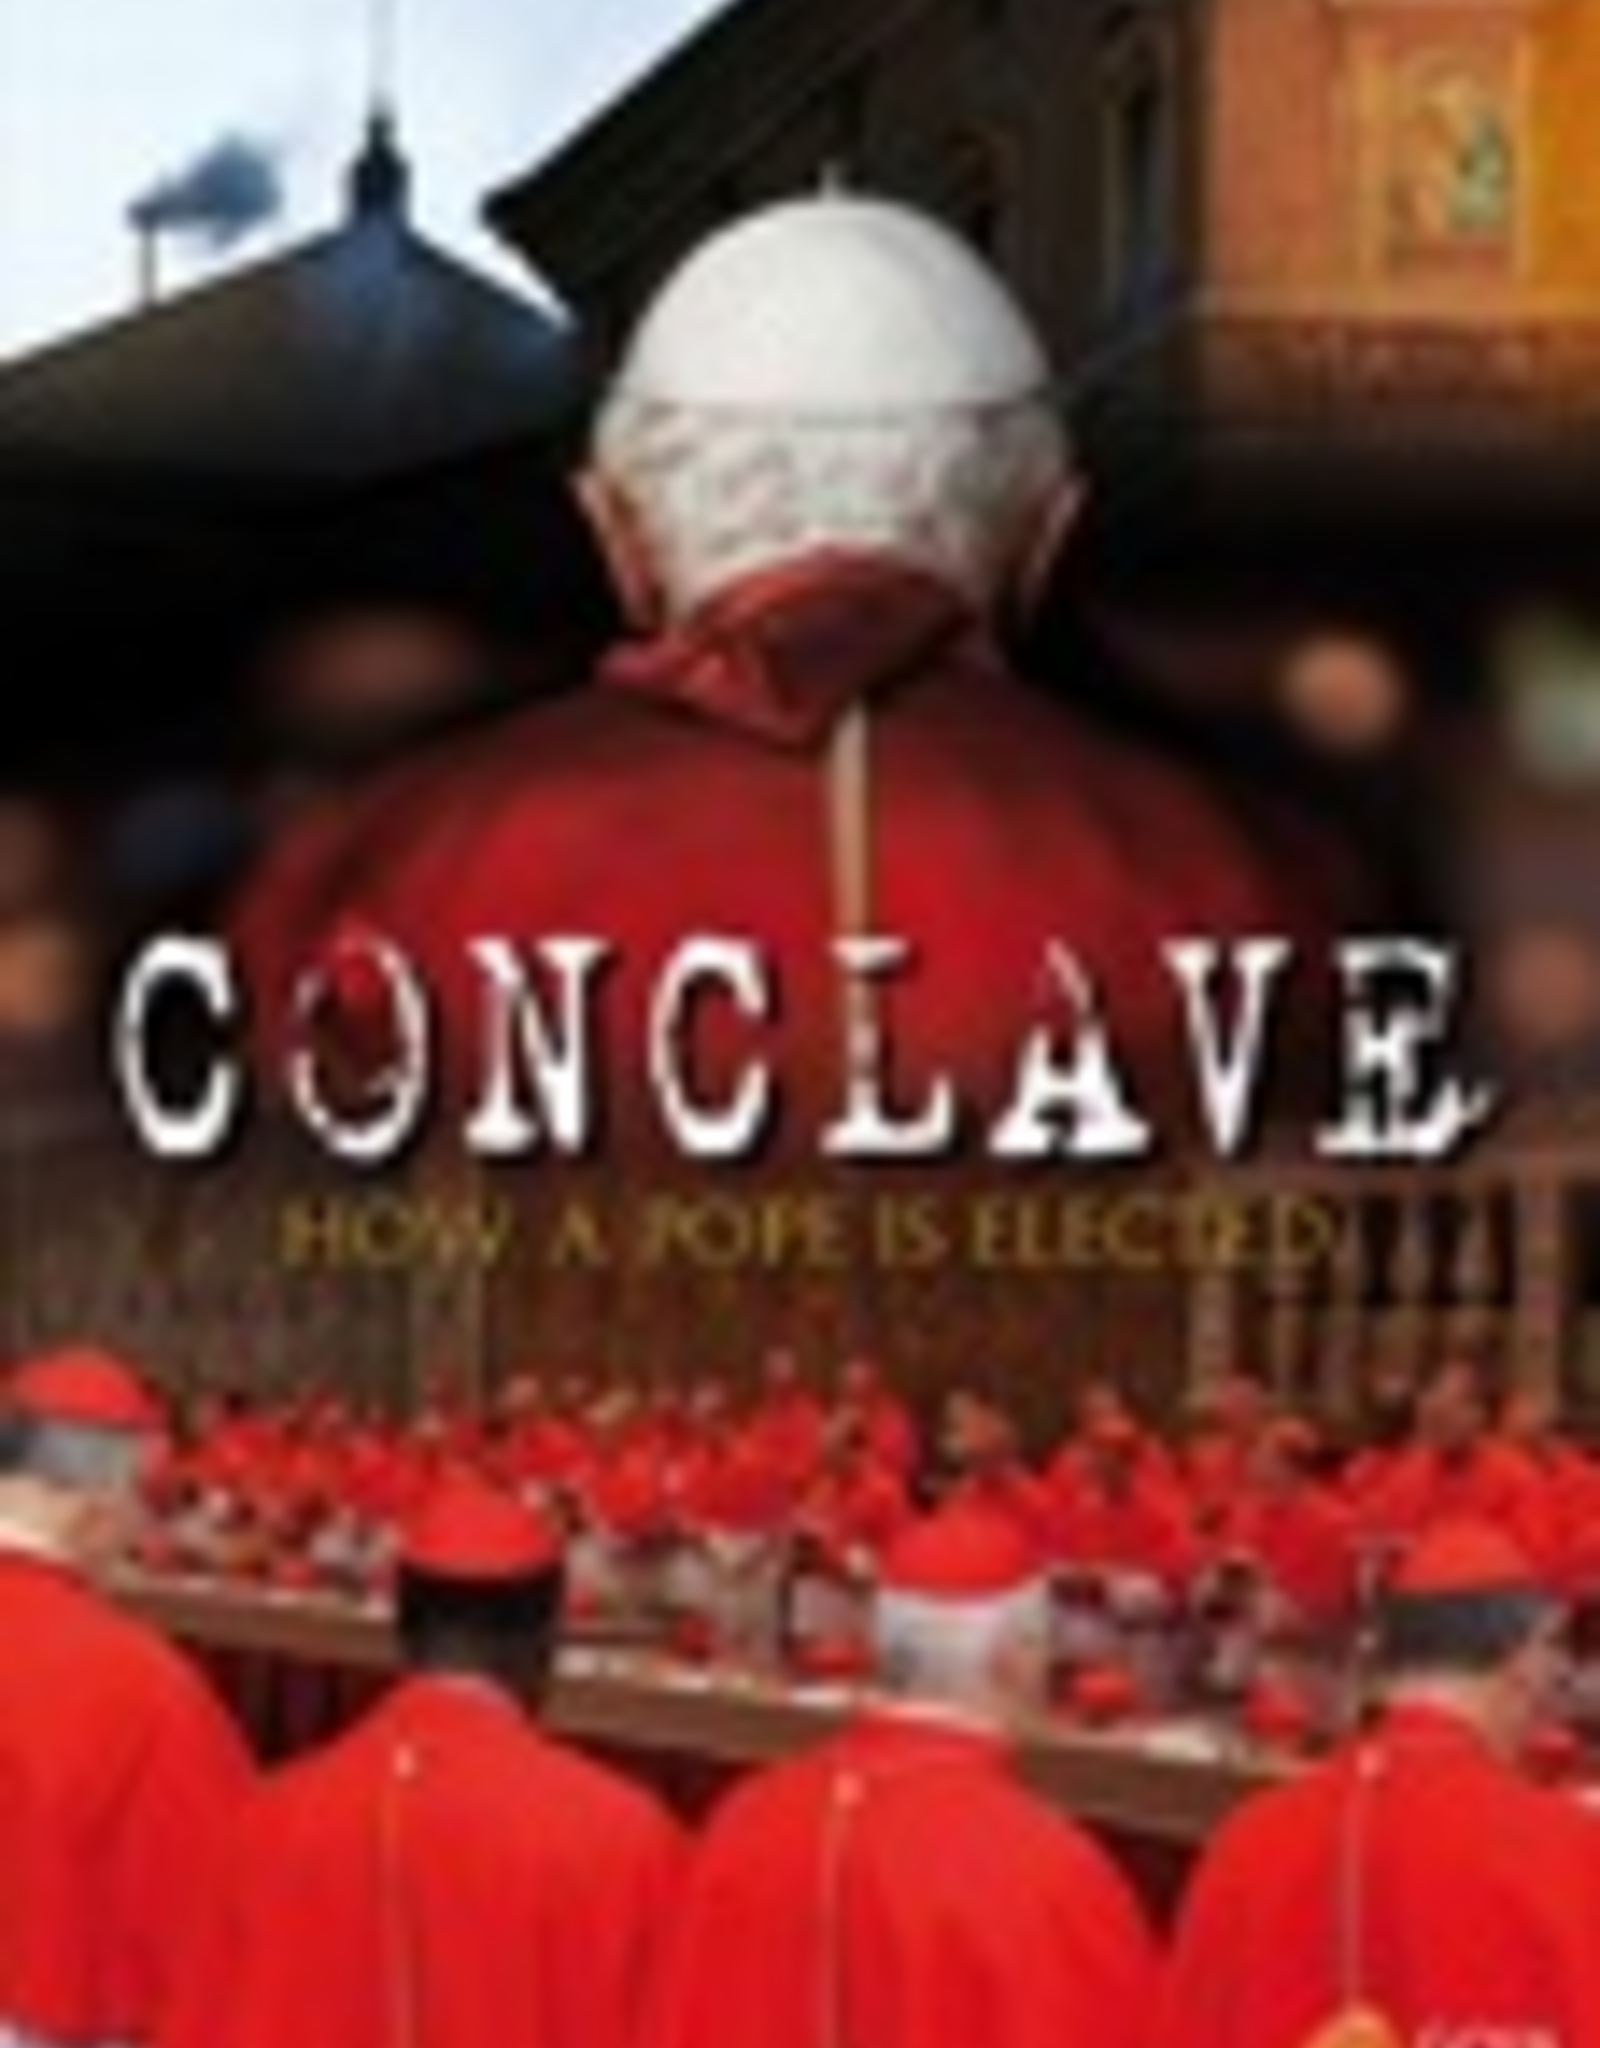 Ignatius Press Conclave:  How a Pope is Elected (DVD)